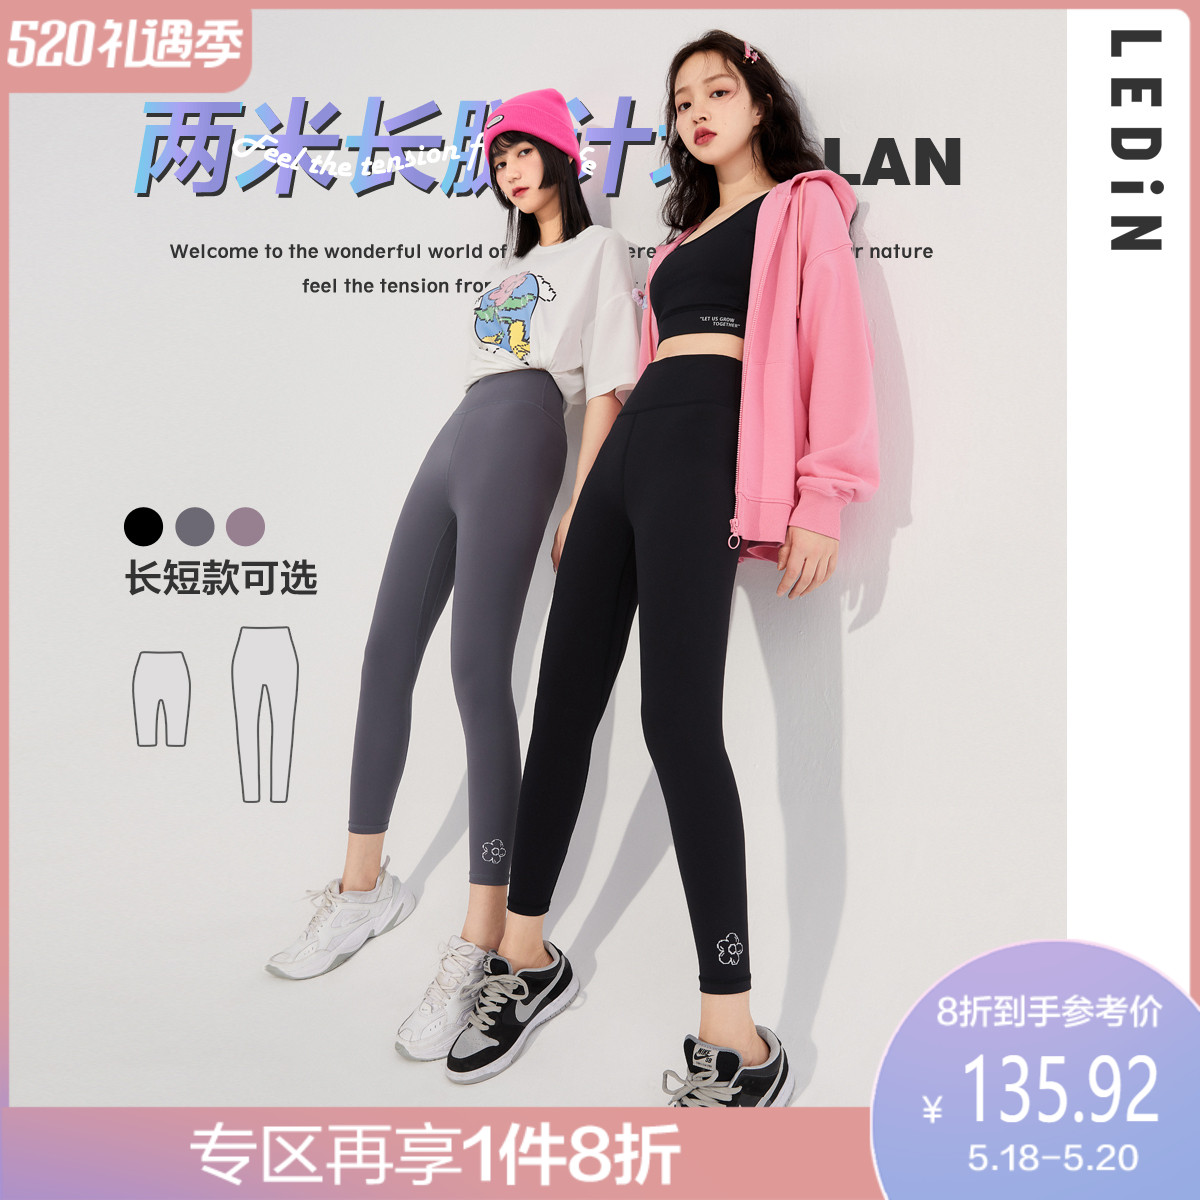 包邮 乐 2021 Spring new shorts three kilometers leggings female Barbi pants sports tight pants women's slim